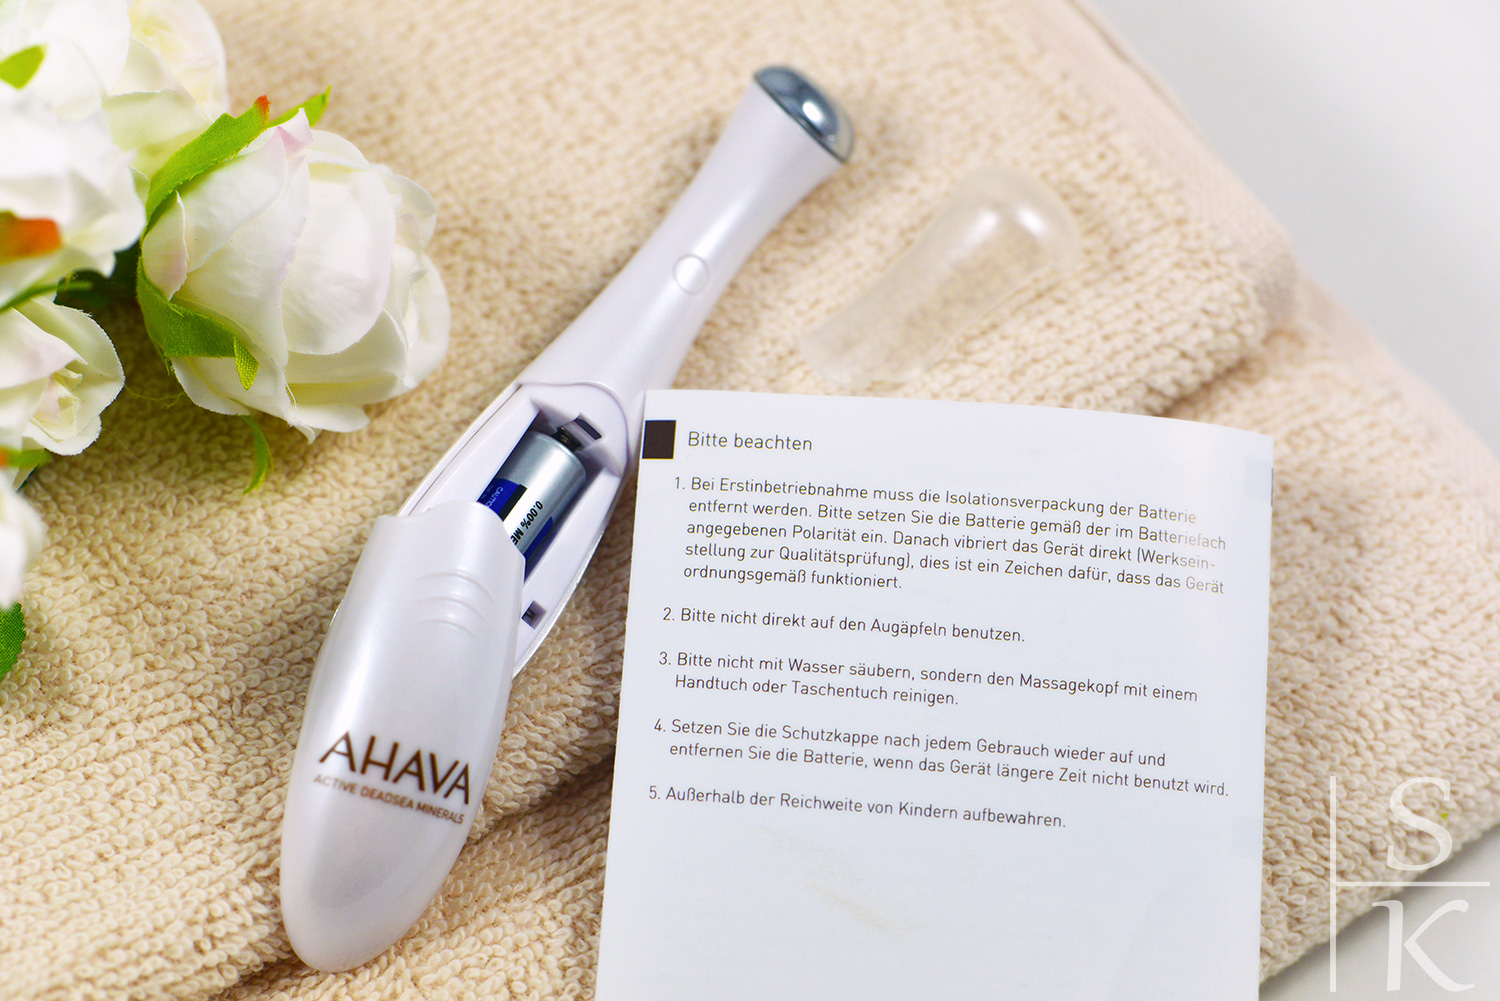 Ahava - Eye Wrinkle Eraser @Saskia-Katharina Most, Horizont-Blog